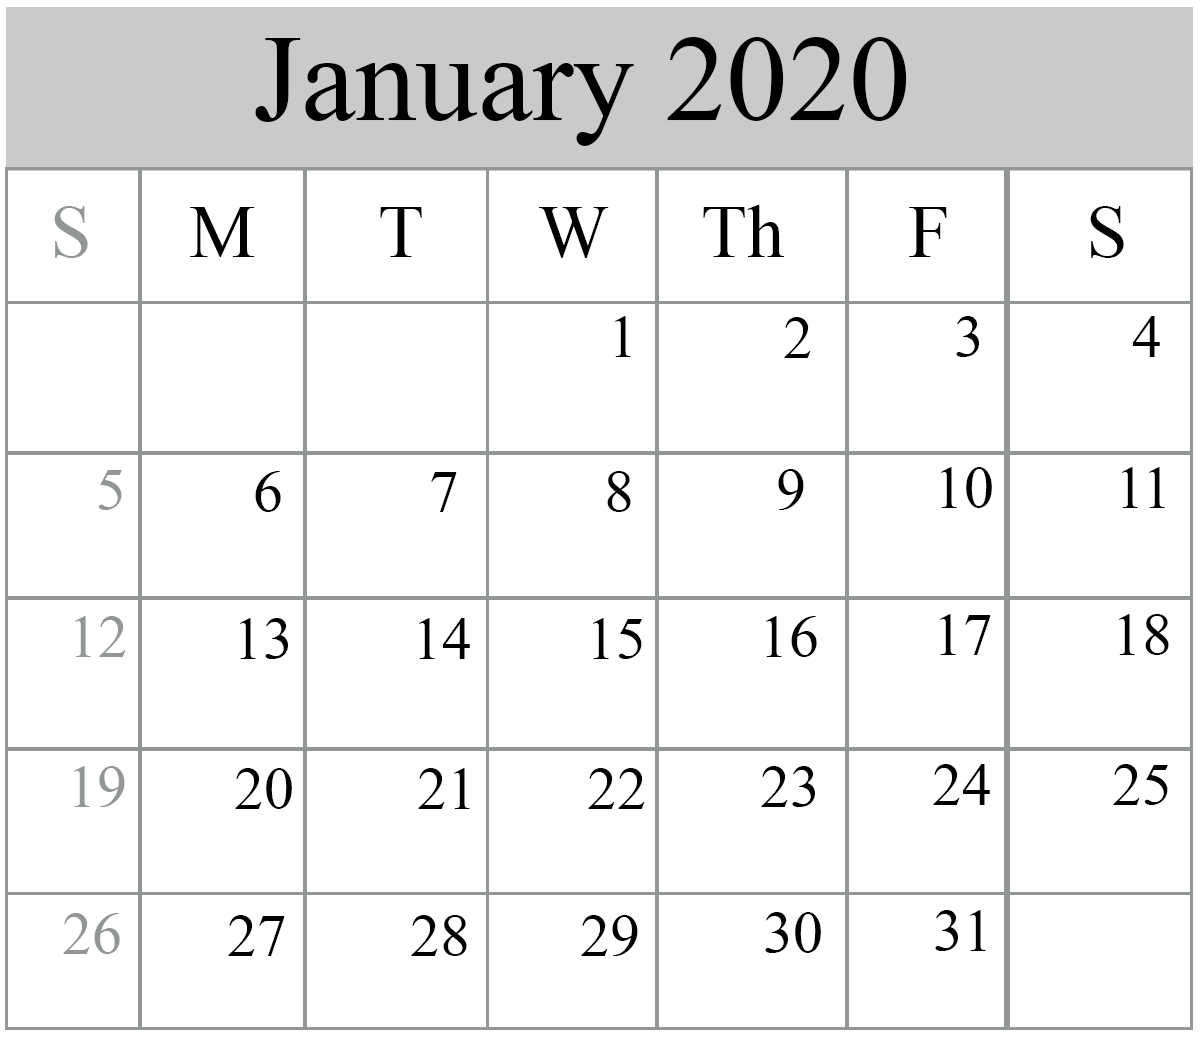 January 2020 Calendar Excel Download